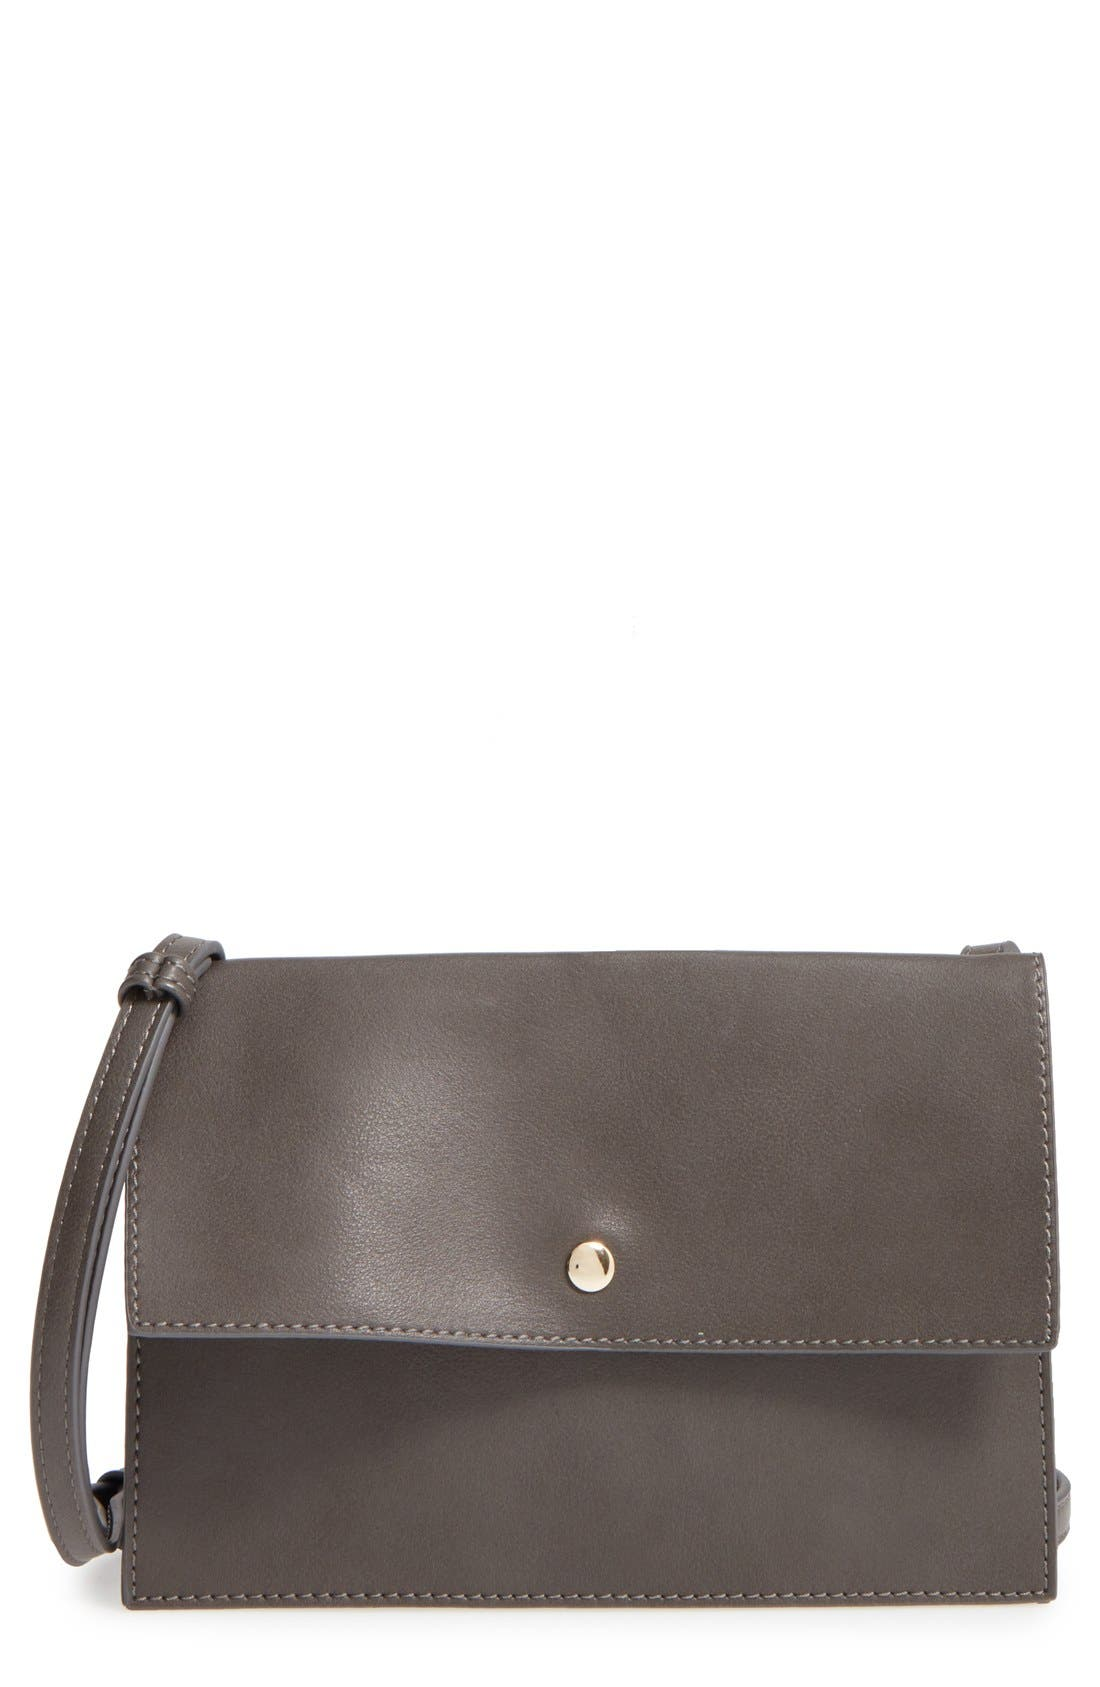 'Vanessa' Faux Leather Crossbody Bag,                             Main thumbnail 1, color,                             020